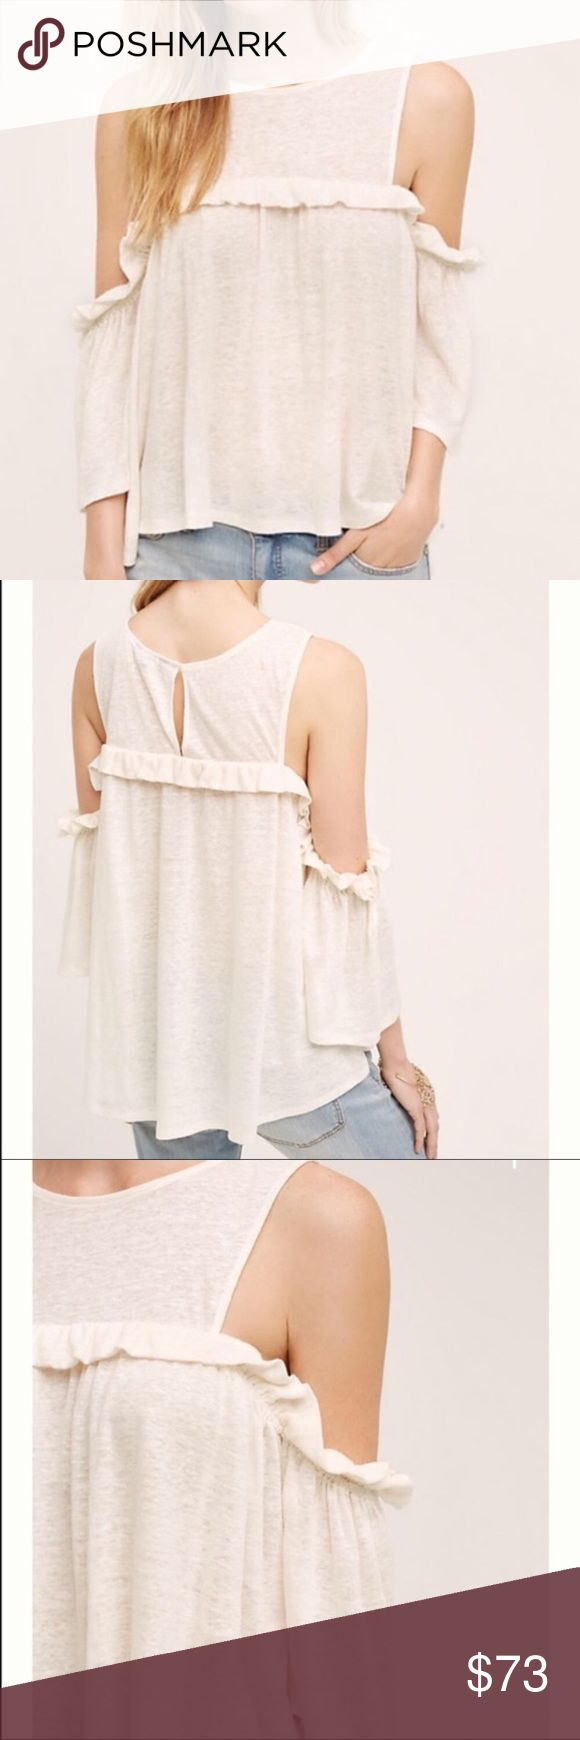 New Anthropologie Brand Off the Shoulder Ivory Top Purchased from Anthropologie⚜️I love receiving offers through the offer button!⚜️ Brand new with tags! Fast same or next day shipping!📨 Open to offers but I don't negotiate in the comments so please use the offer button😊 Anthropologie Tops